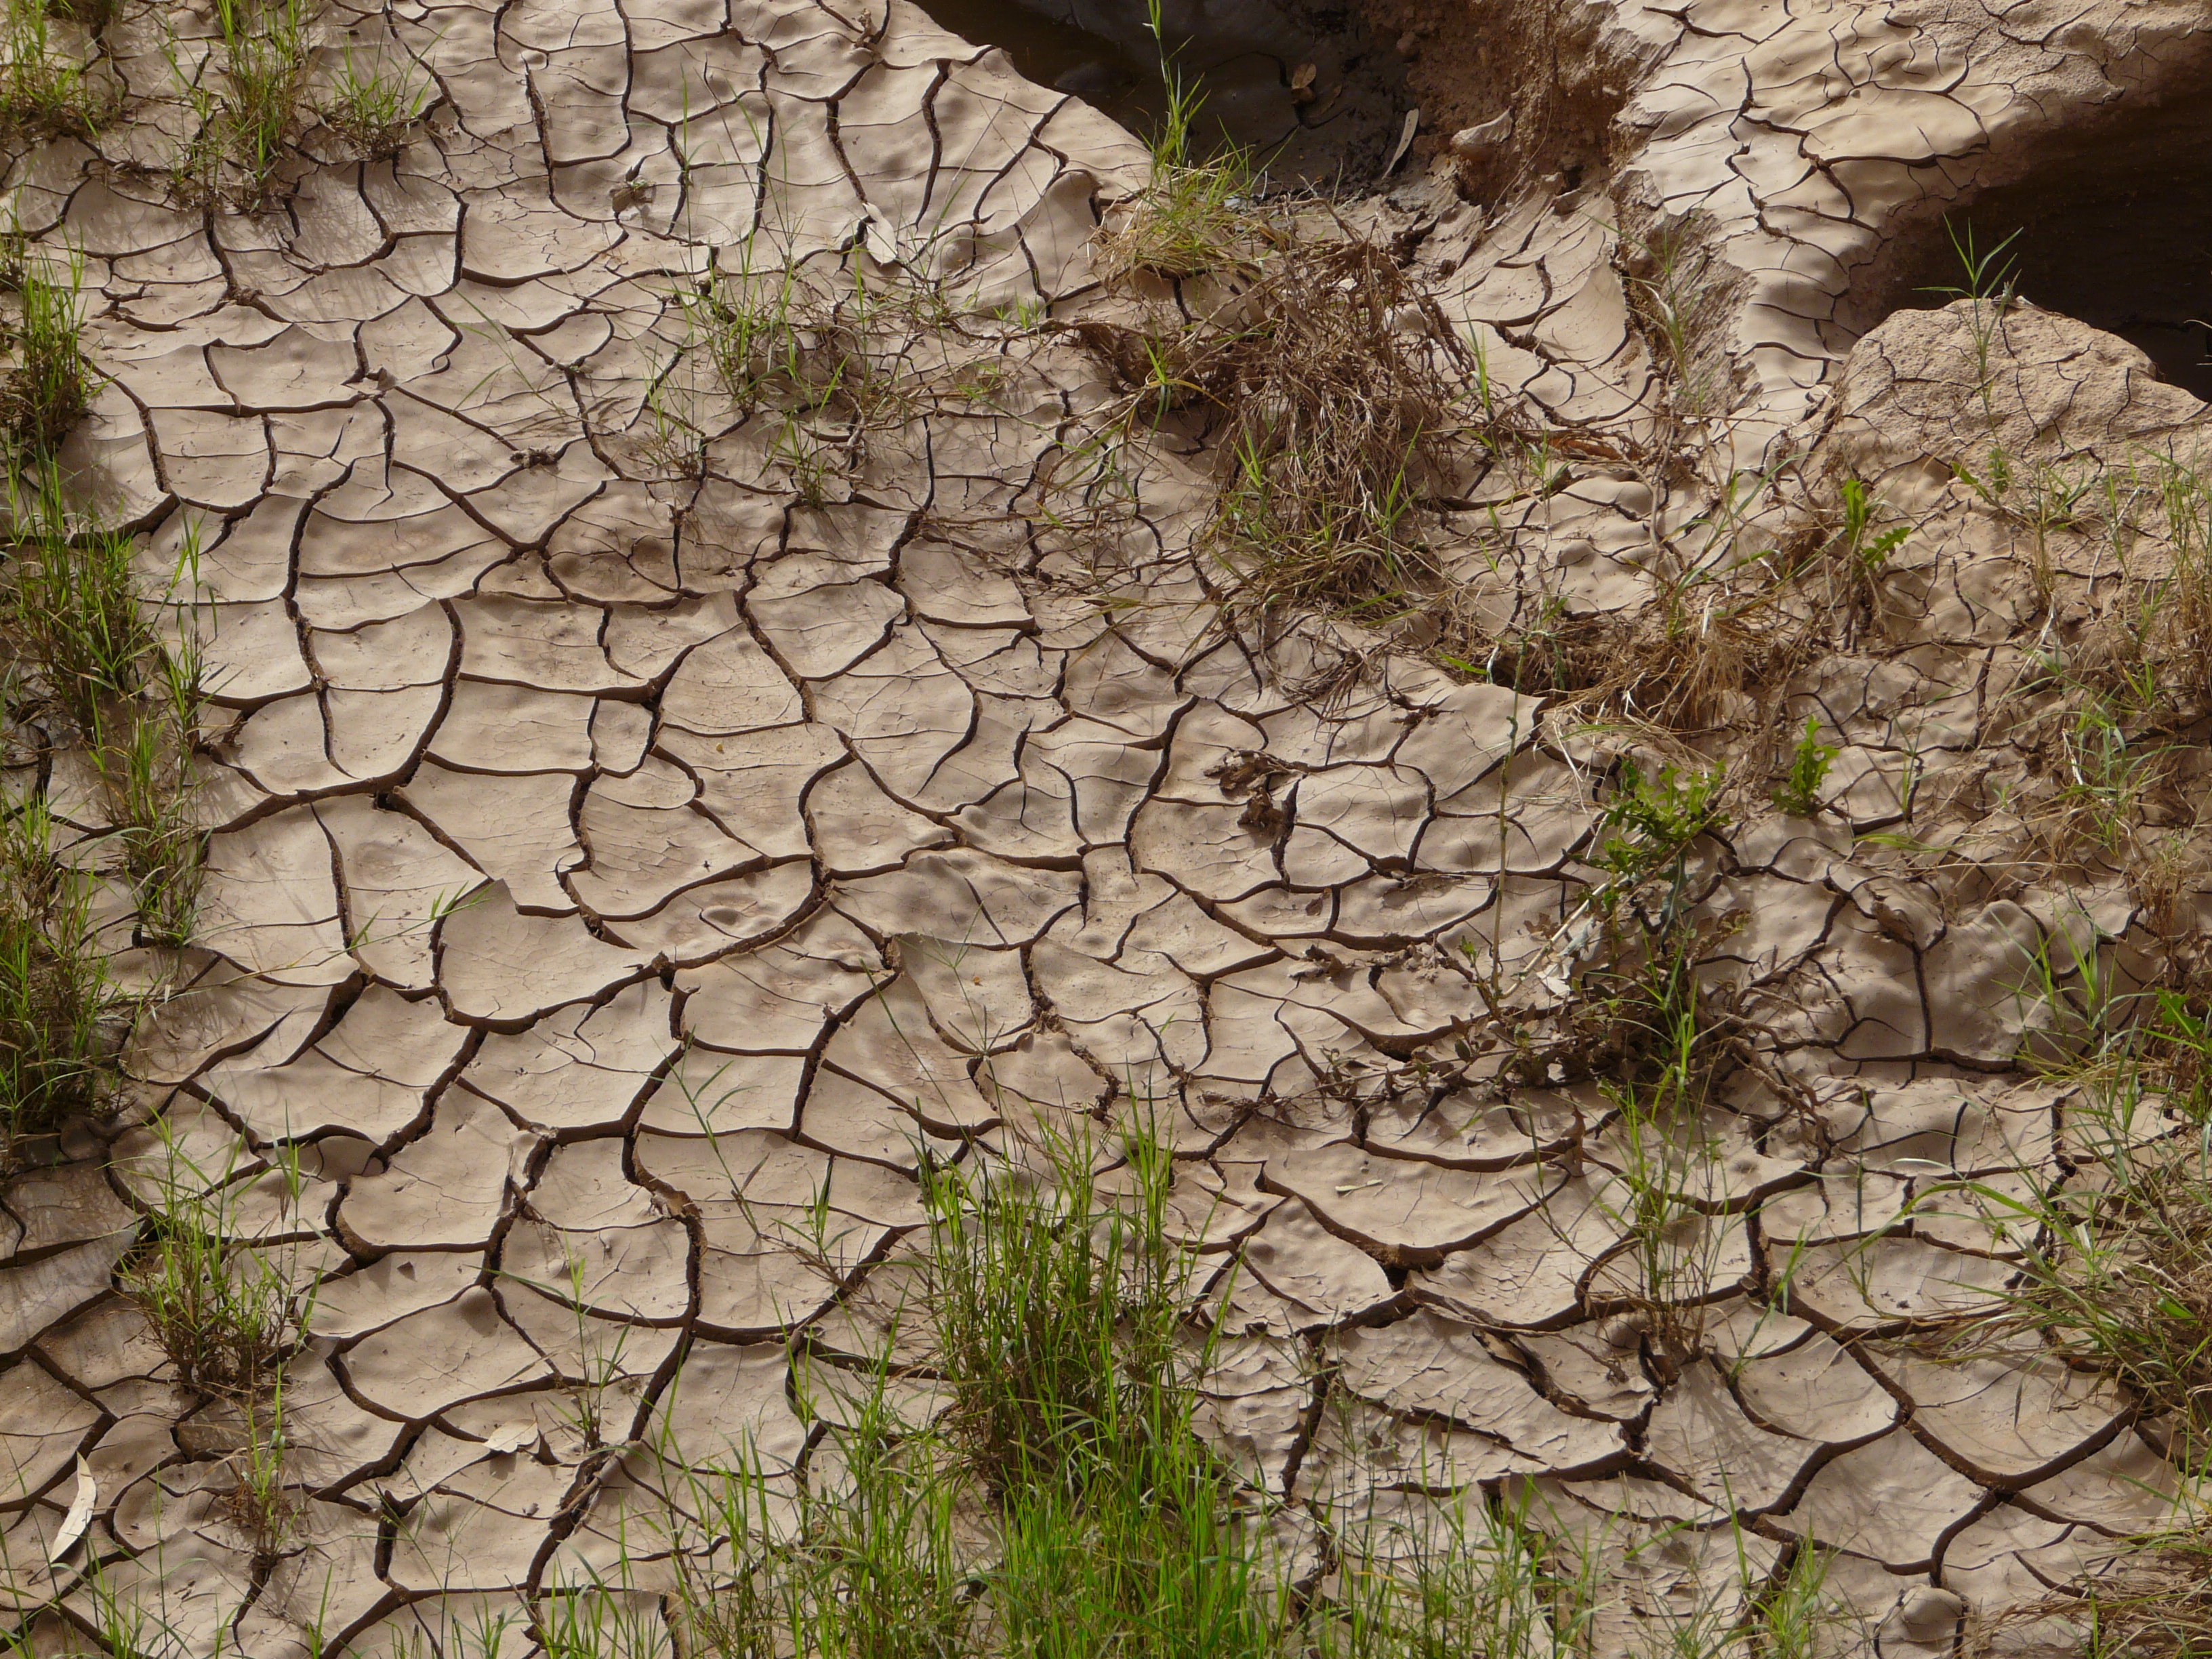 Australia dried up riverbed